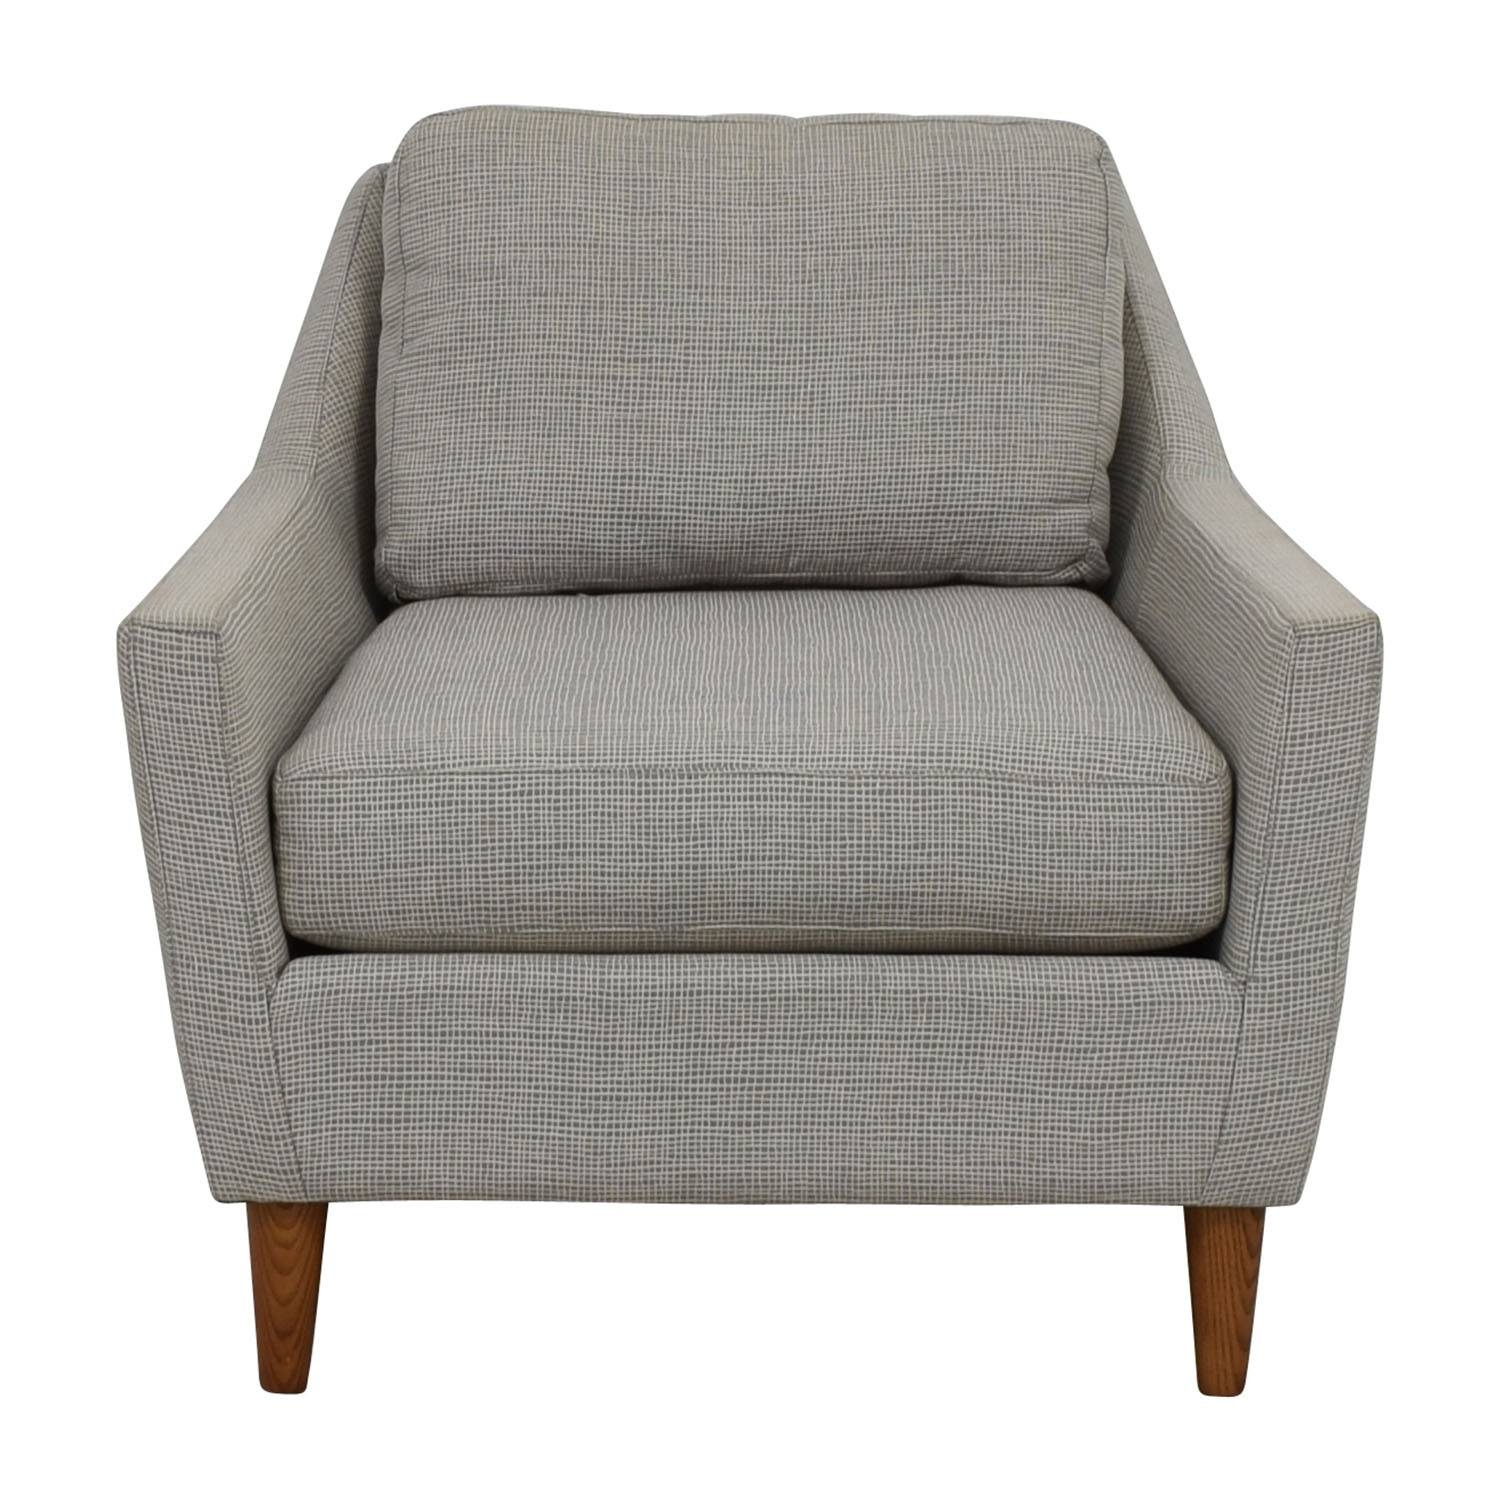 66% Off   West Elm West Elm Grey Everett Sofa Chair / Chairs Inside Sofa Chairs (Photo 7 of 30)